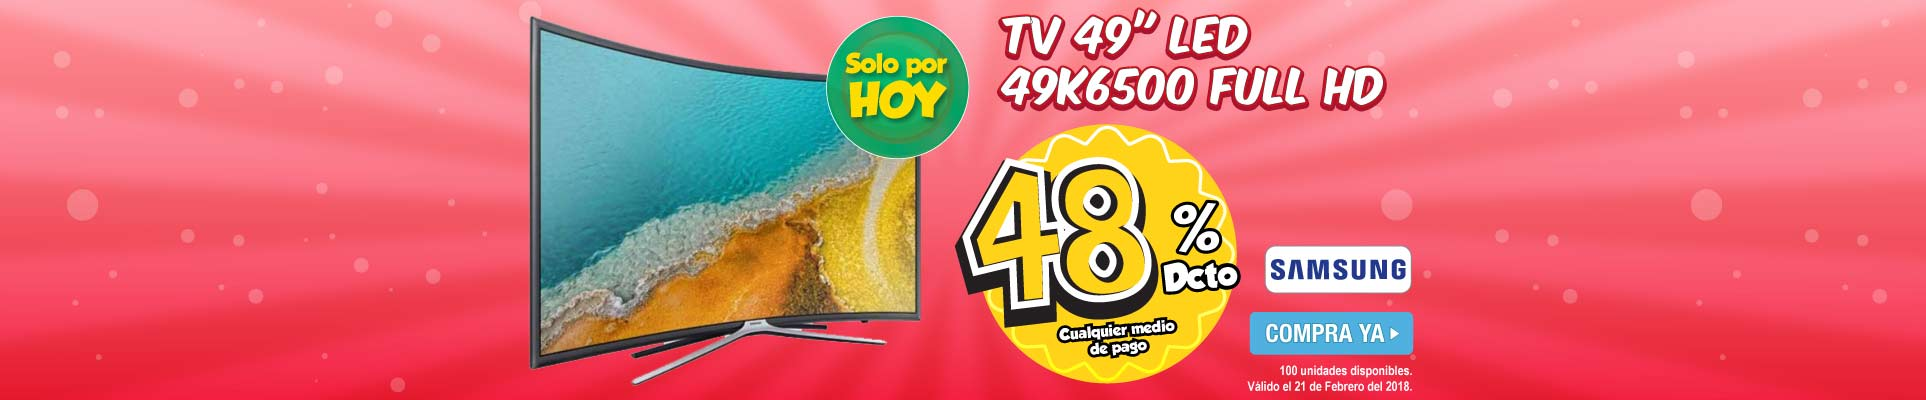 PPAL ALKP-1-tv-TV 49 124cm SAMSUNG LED 49K6500 Full HD-prod-Febrero21